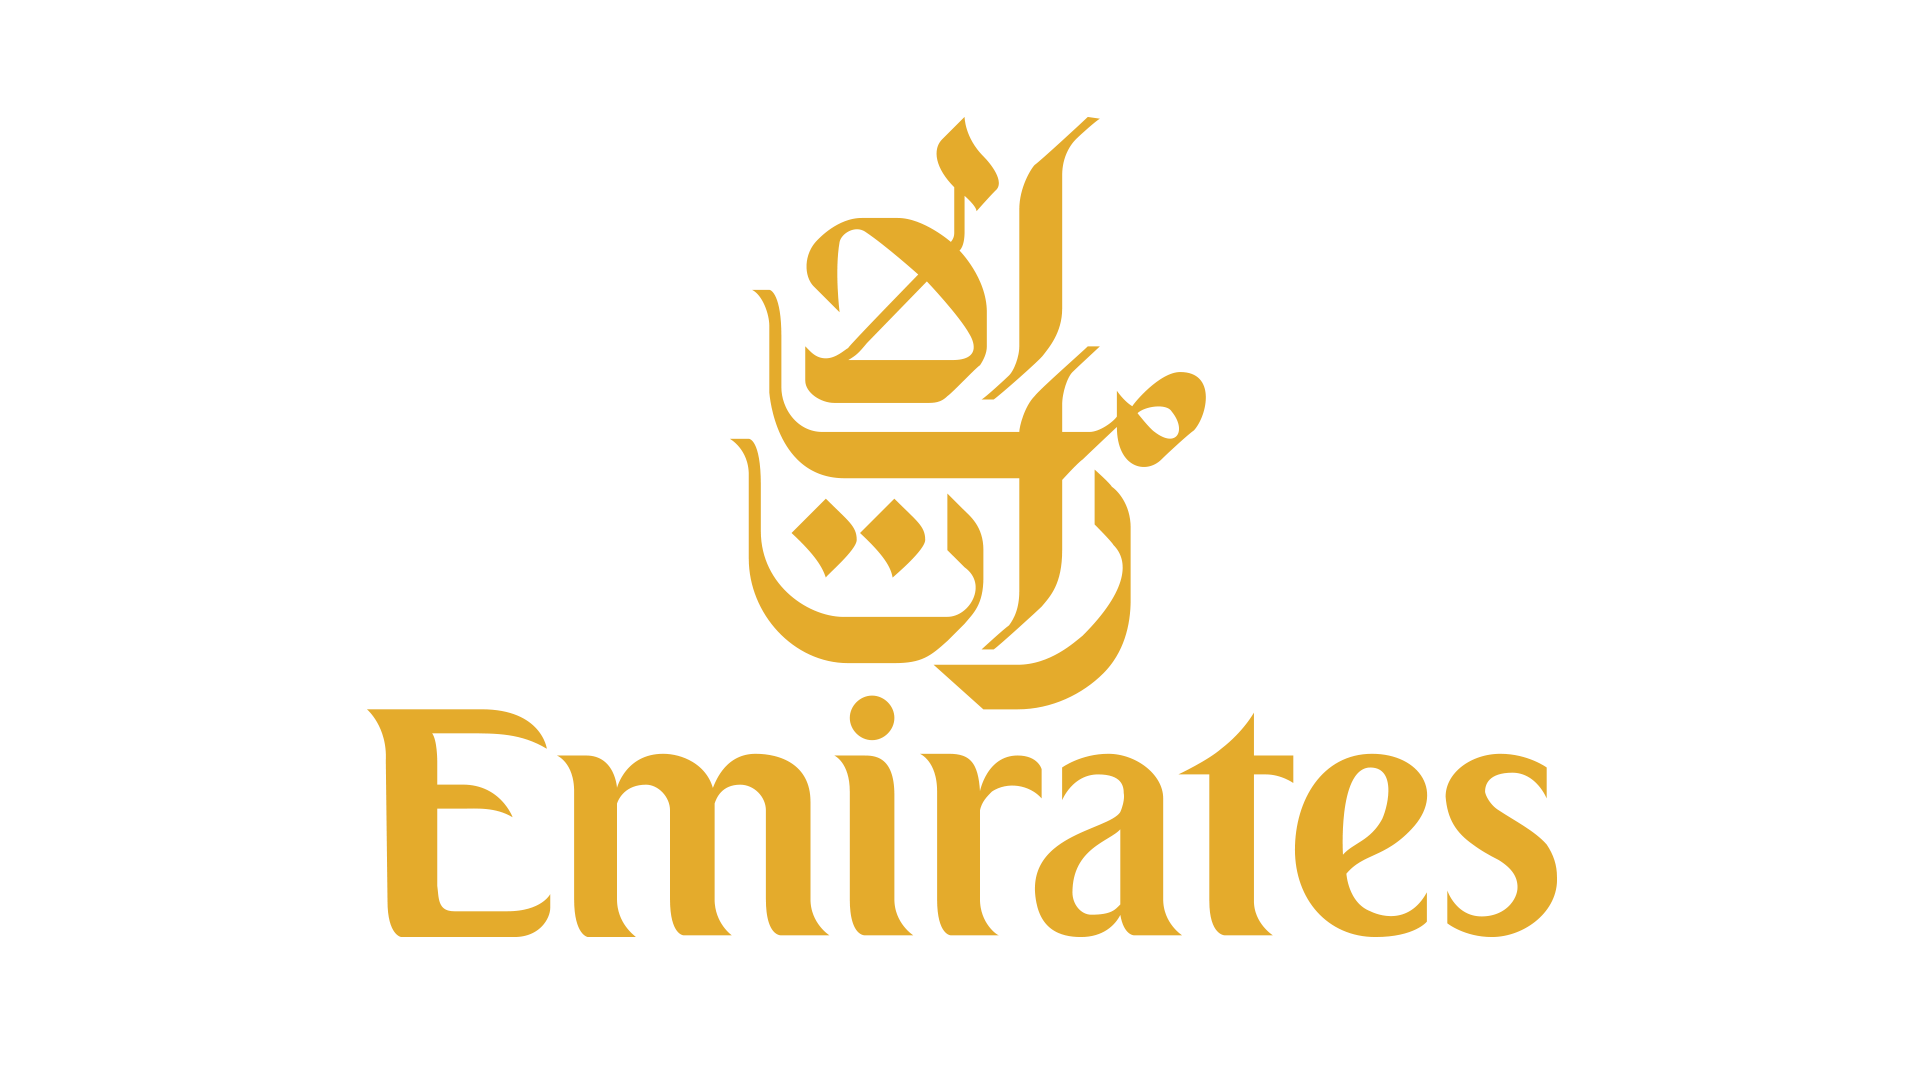 Emirates Airlines full logo gold on transparent background, brand, branding in-flight online duty free shopping experience